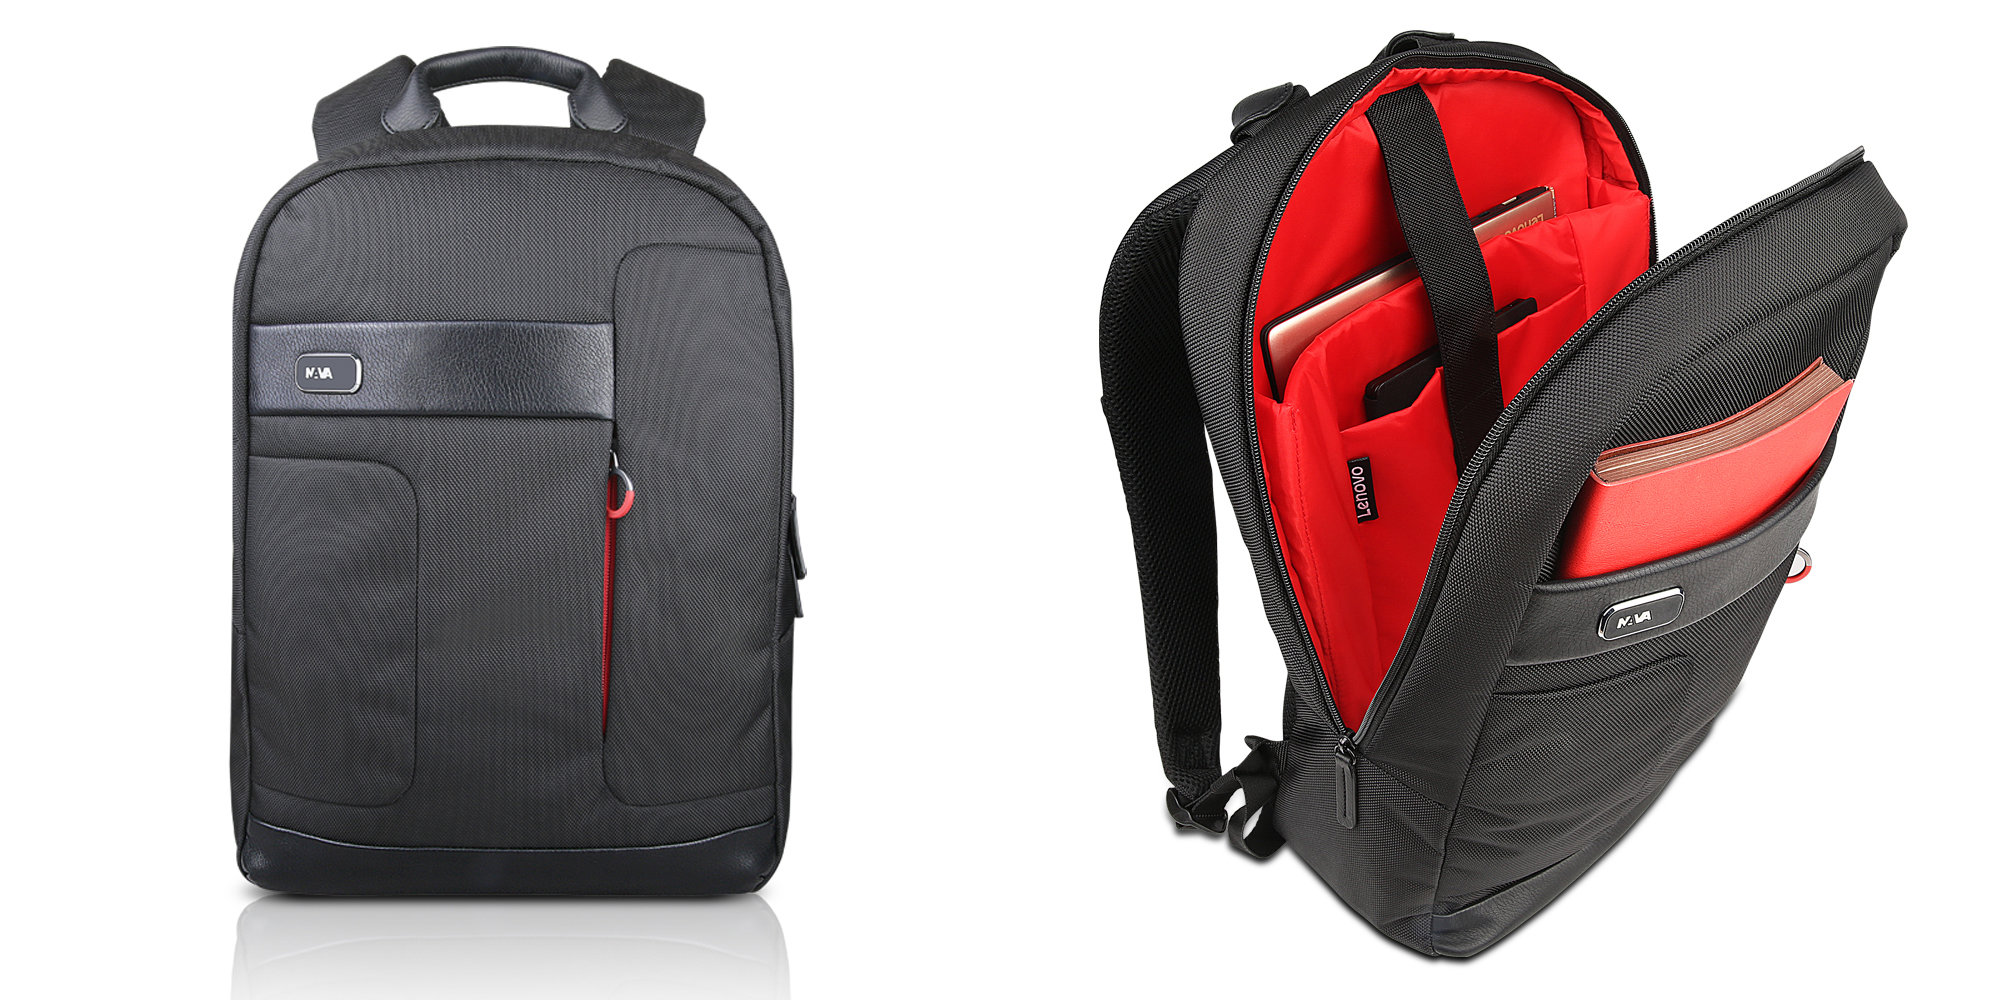 Snag this eye-catching Lenovo MacBook Backpack for a low of $16 shipped (50% off)